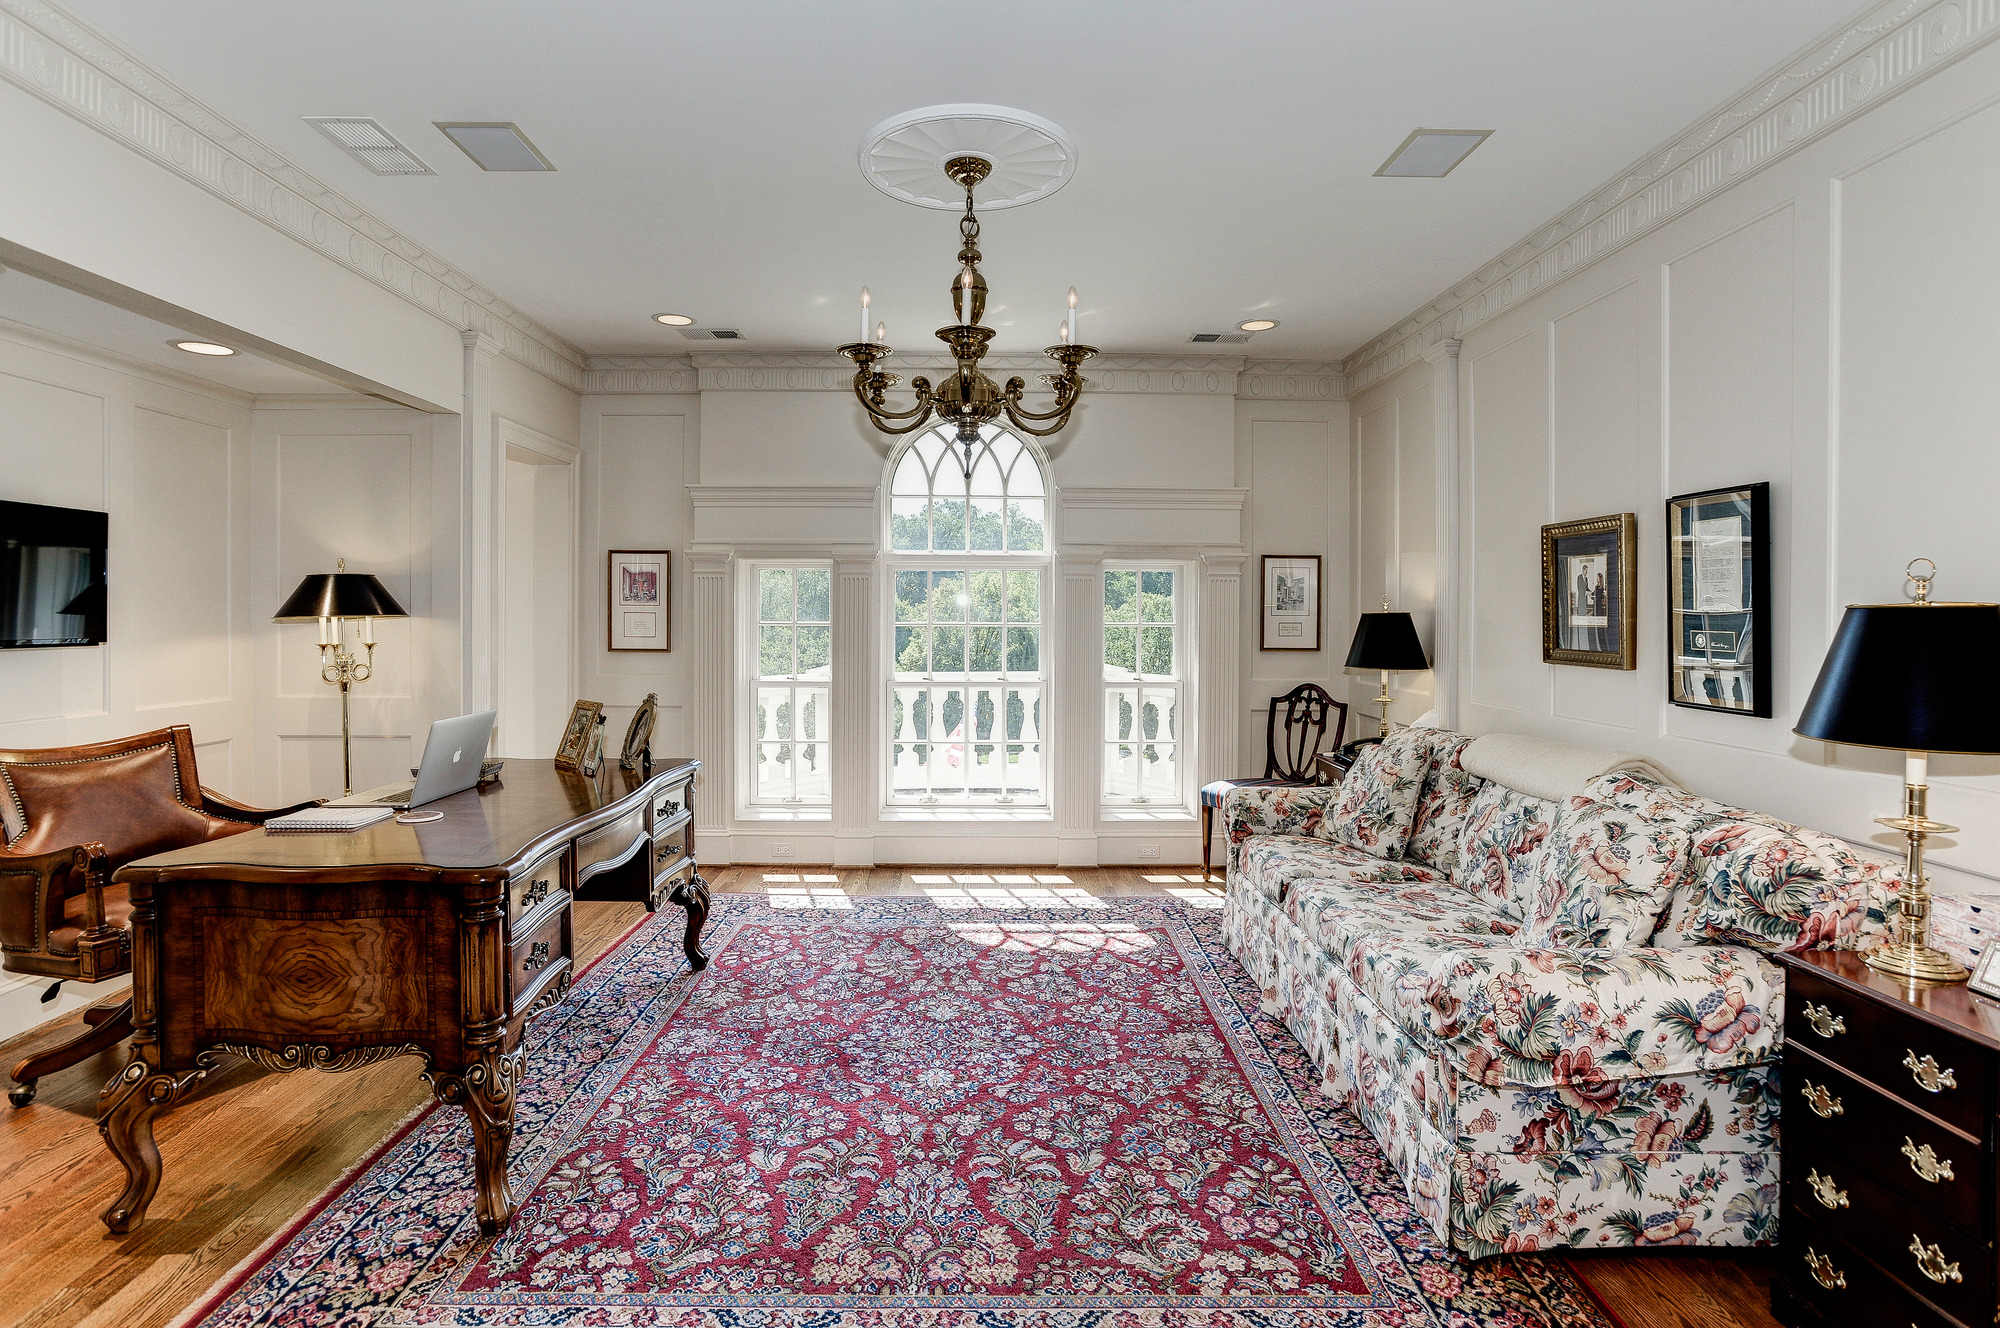 Bethesda Maryland Master Suite Remodeling: 8517 COUNTRY CLUB DR, BETHESDA, MD 20817